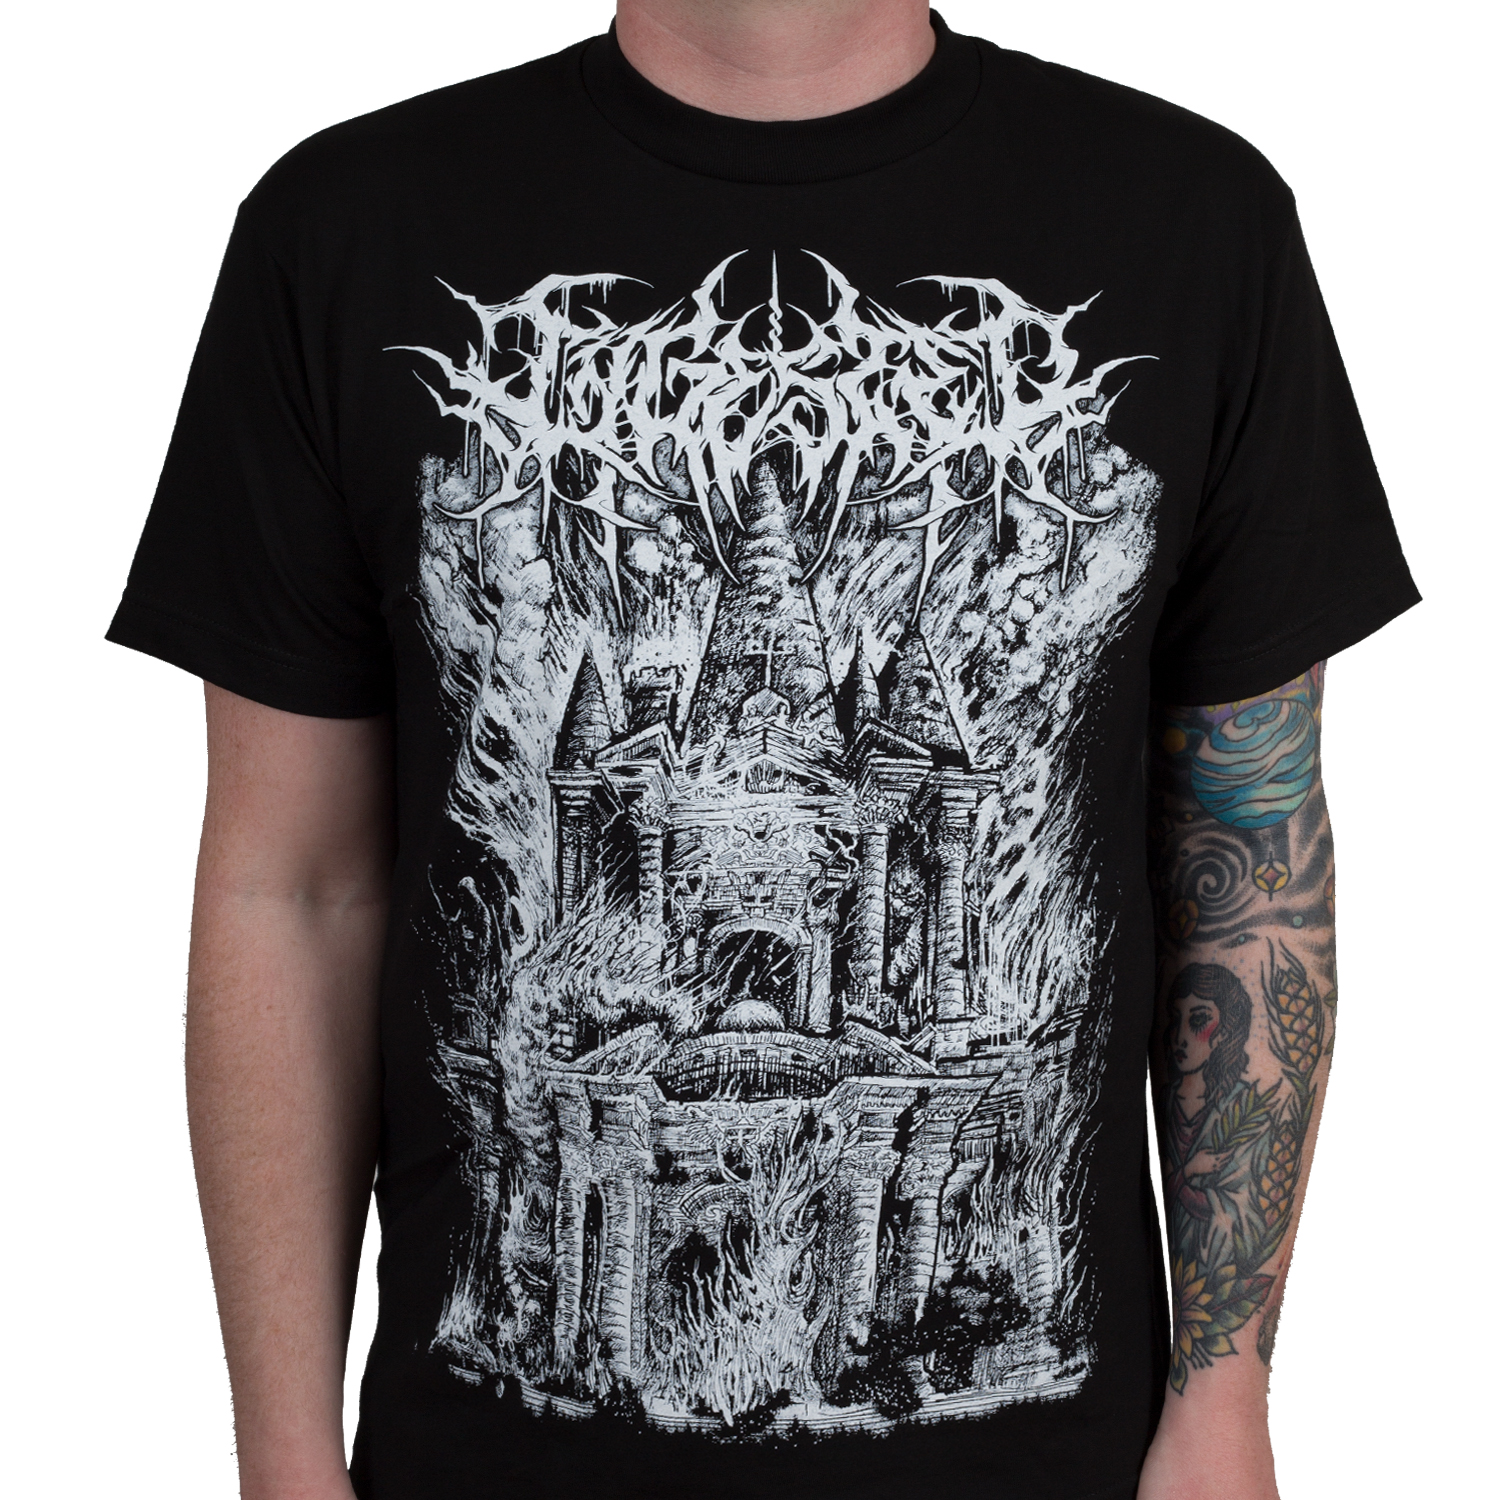 Find great deals at Shop Hells Headbangers on Shirt & T-Shirts. Choose your favourite heavy Black Death thrash metal band shirts & t-shirts from thousands of available designs.